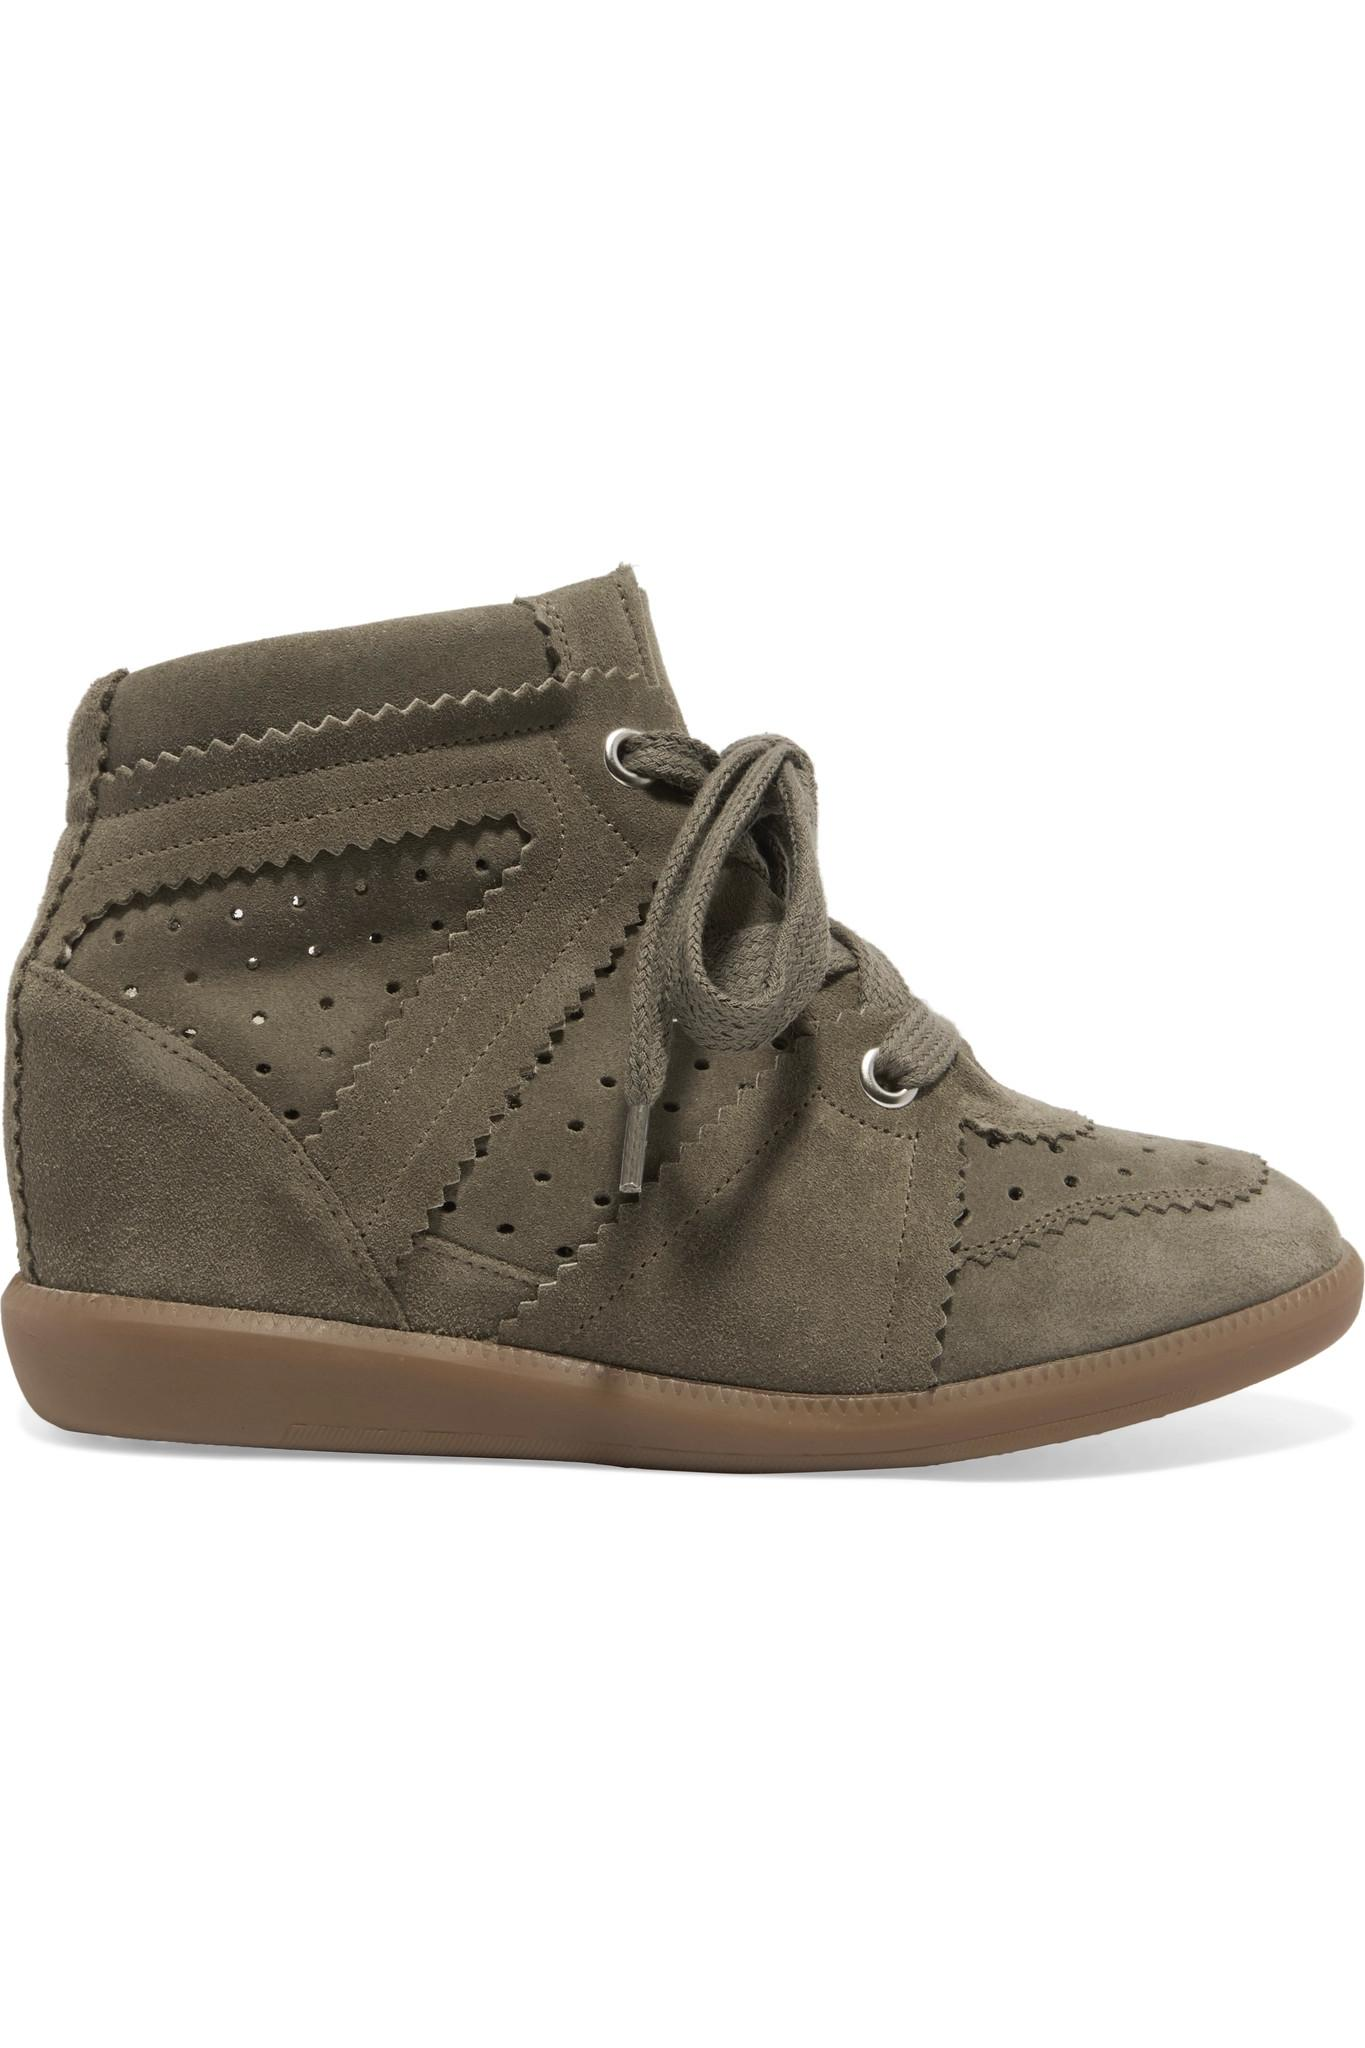 Isabel Marant 201 Toile Bobby Suede Wedge Trainers In Green